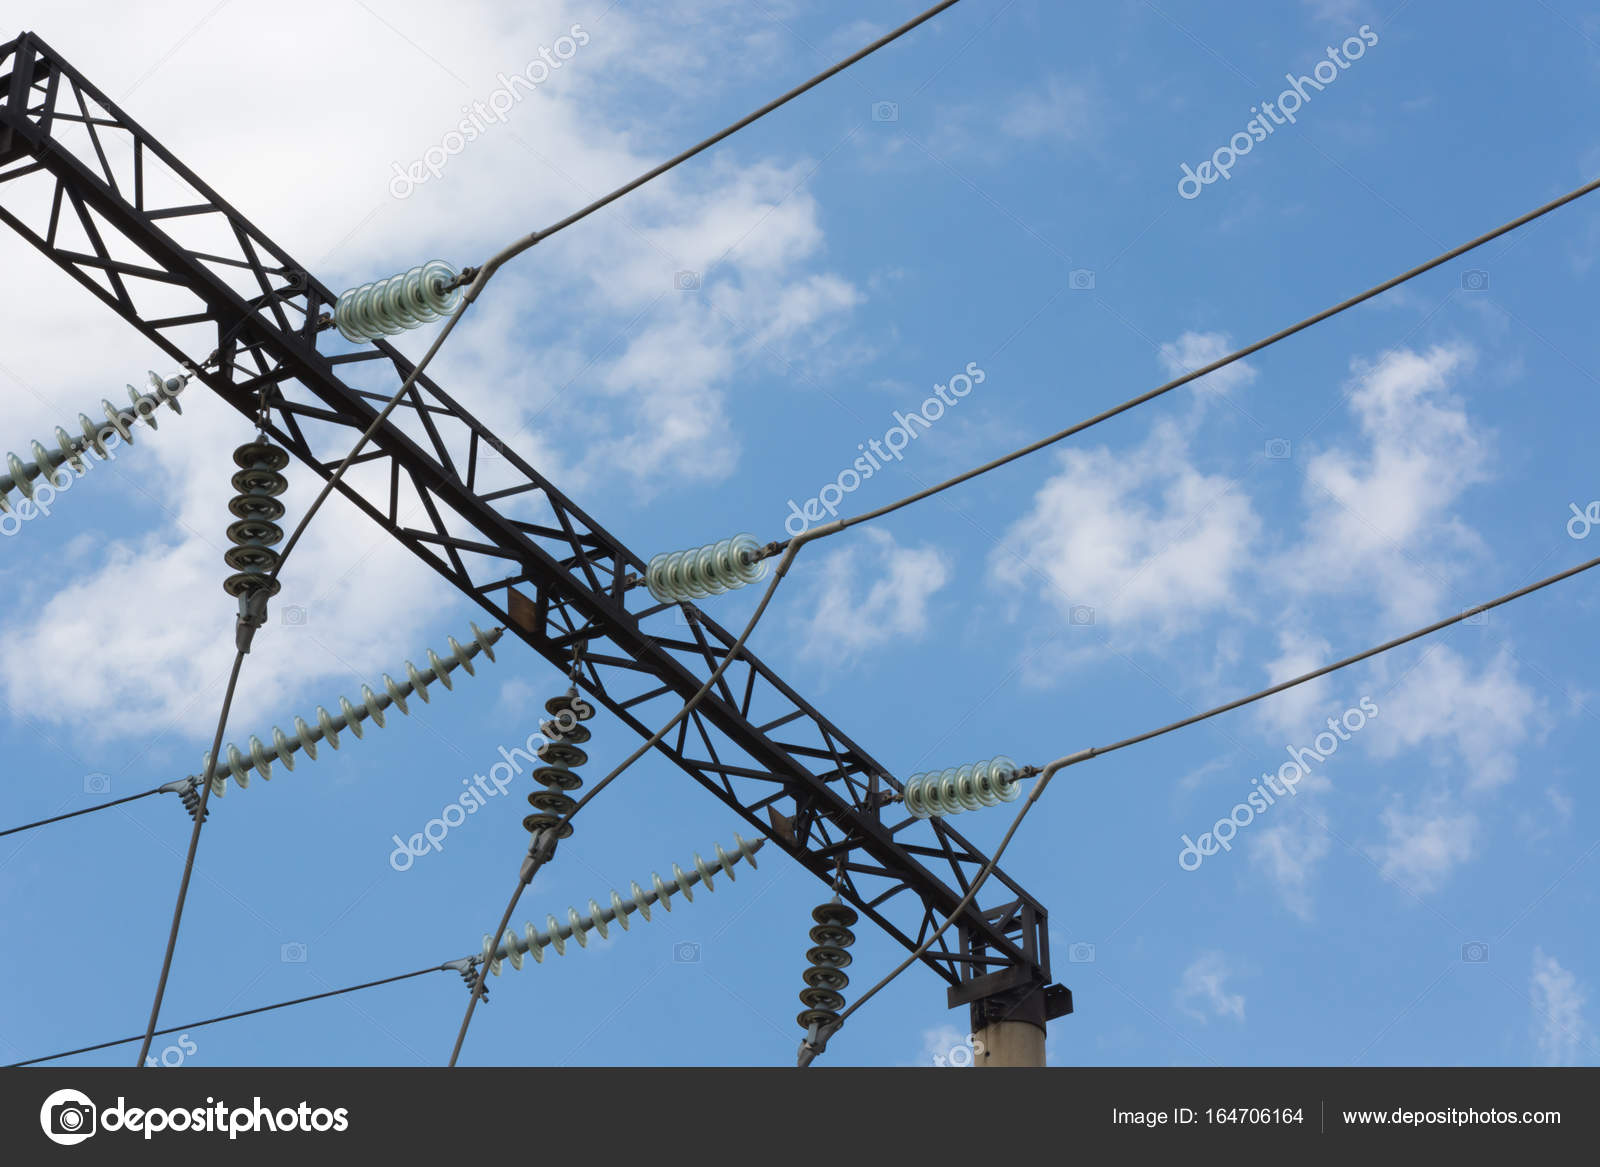 High-voltage wires with insulators — Stock Photo © panzer25 #164706164